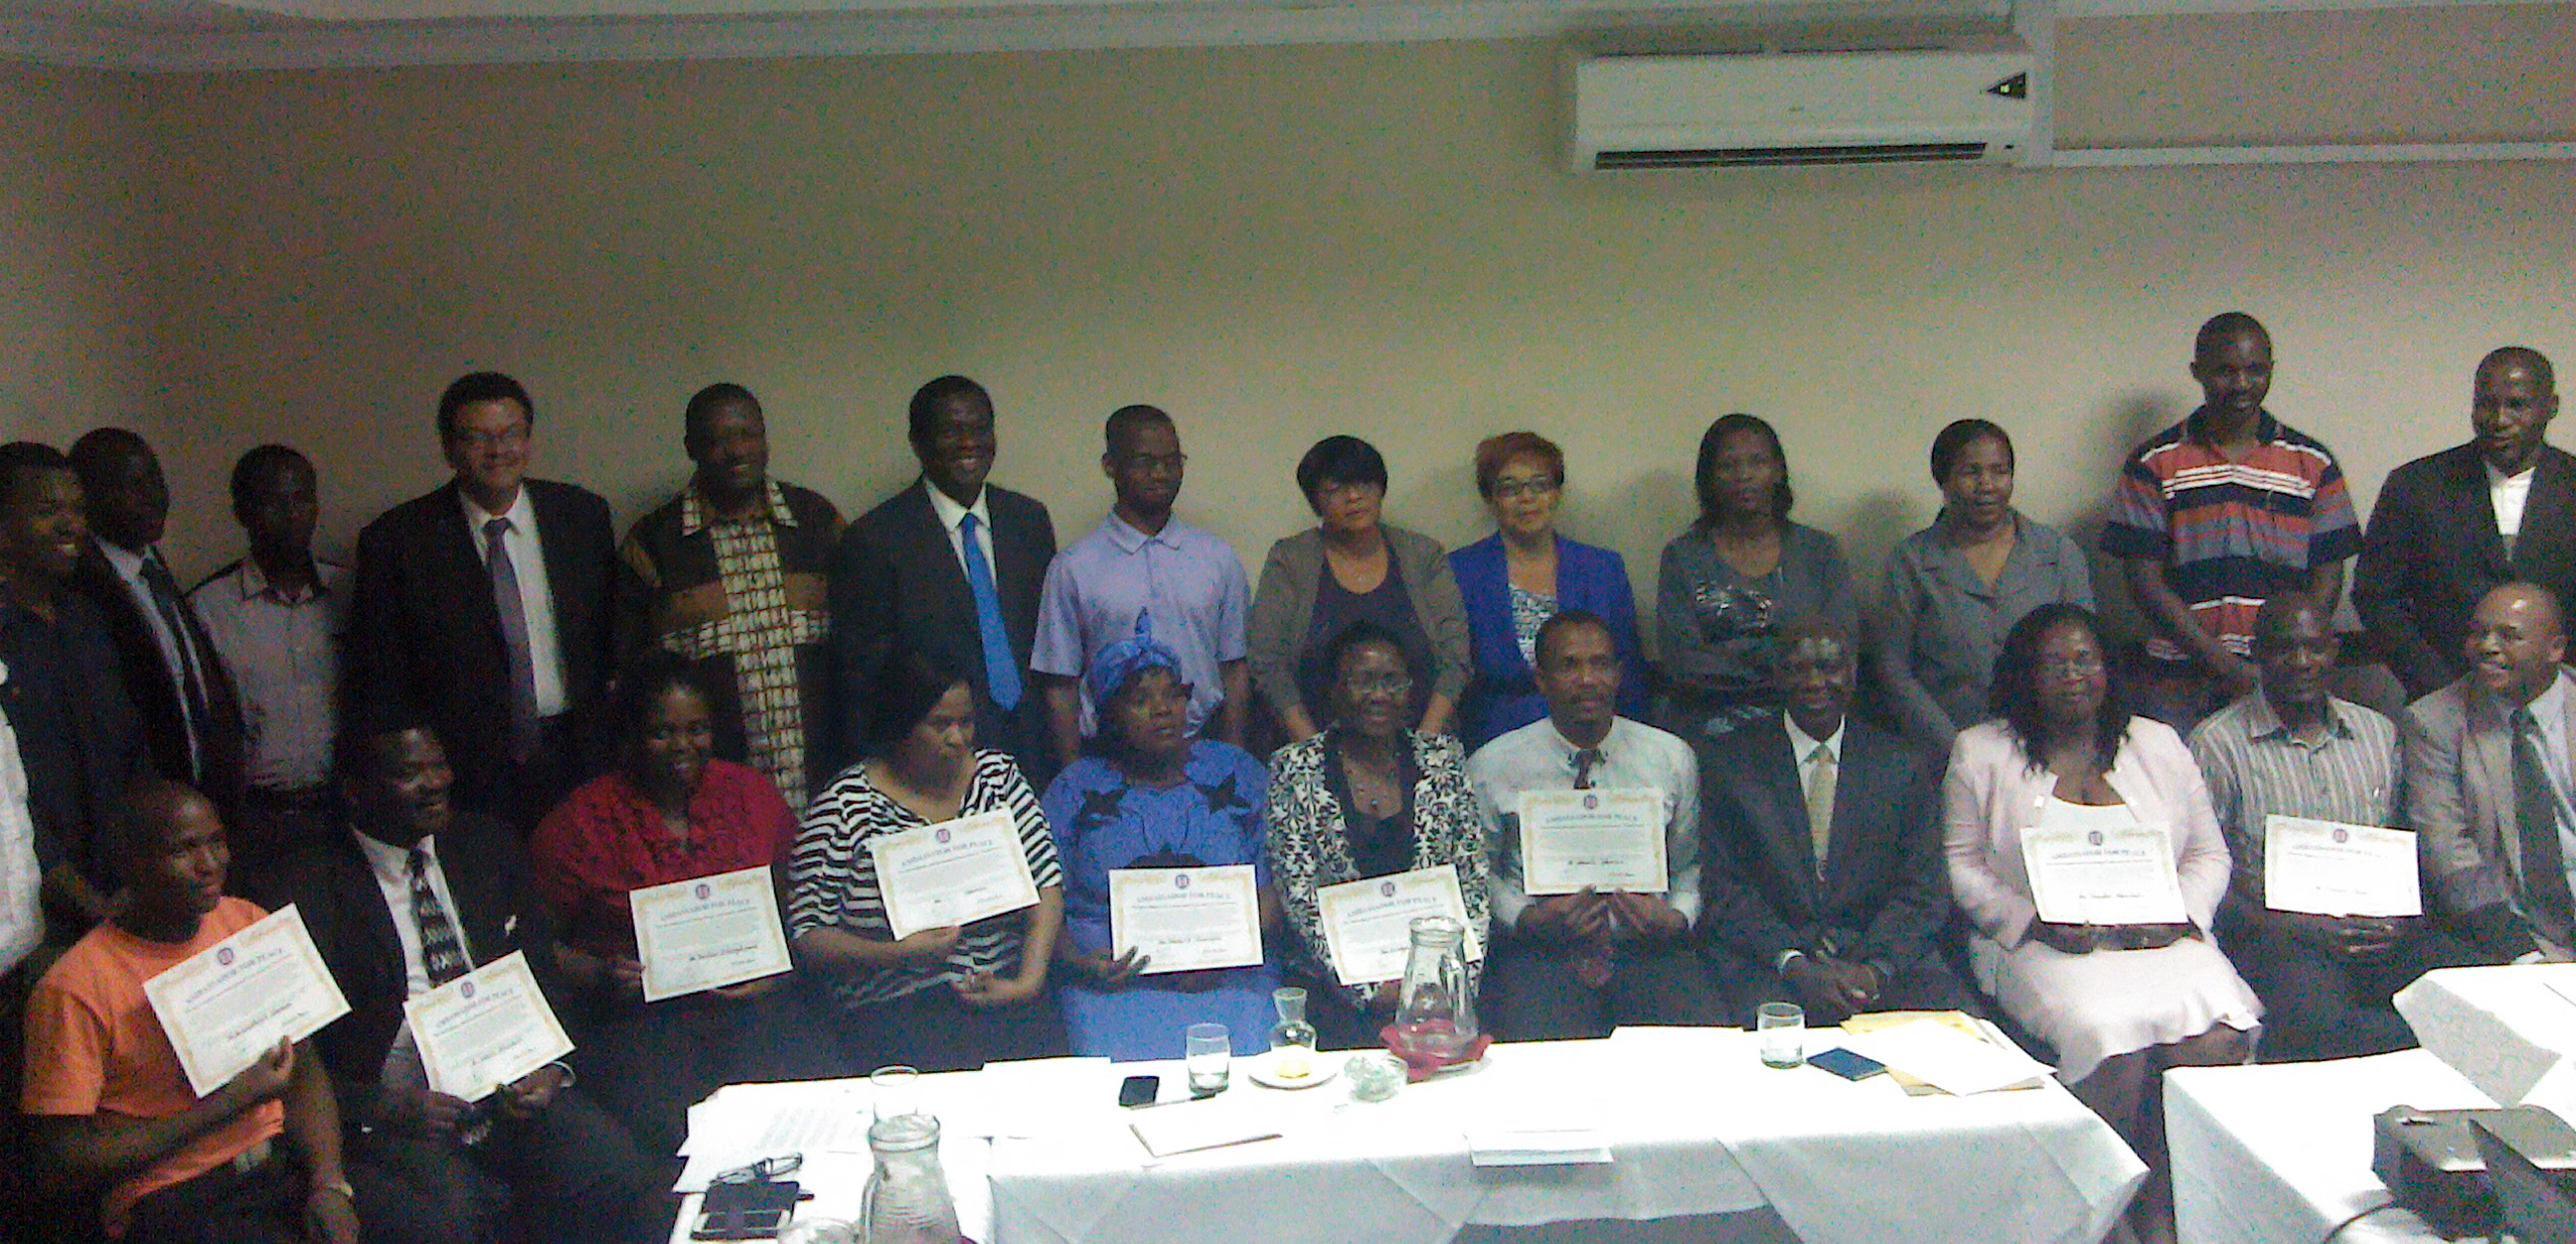 Ambassadors For Peace with their Certificates